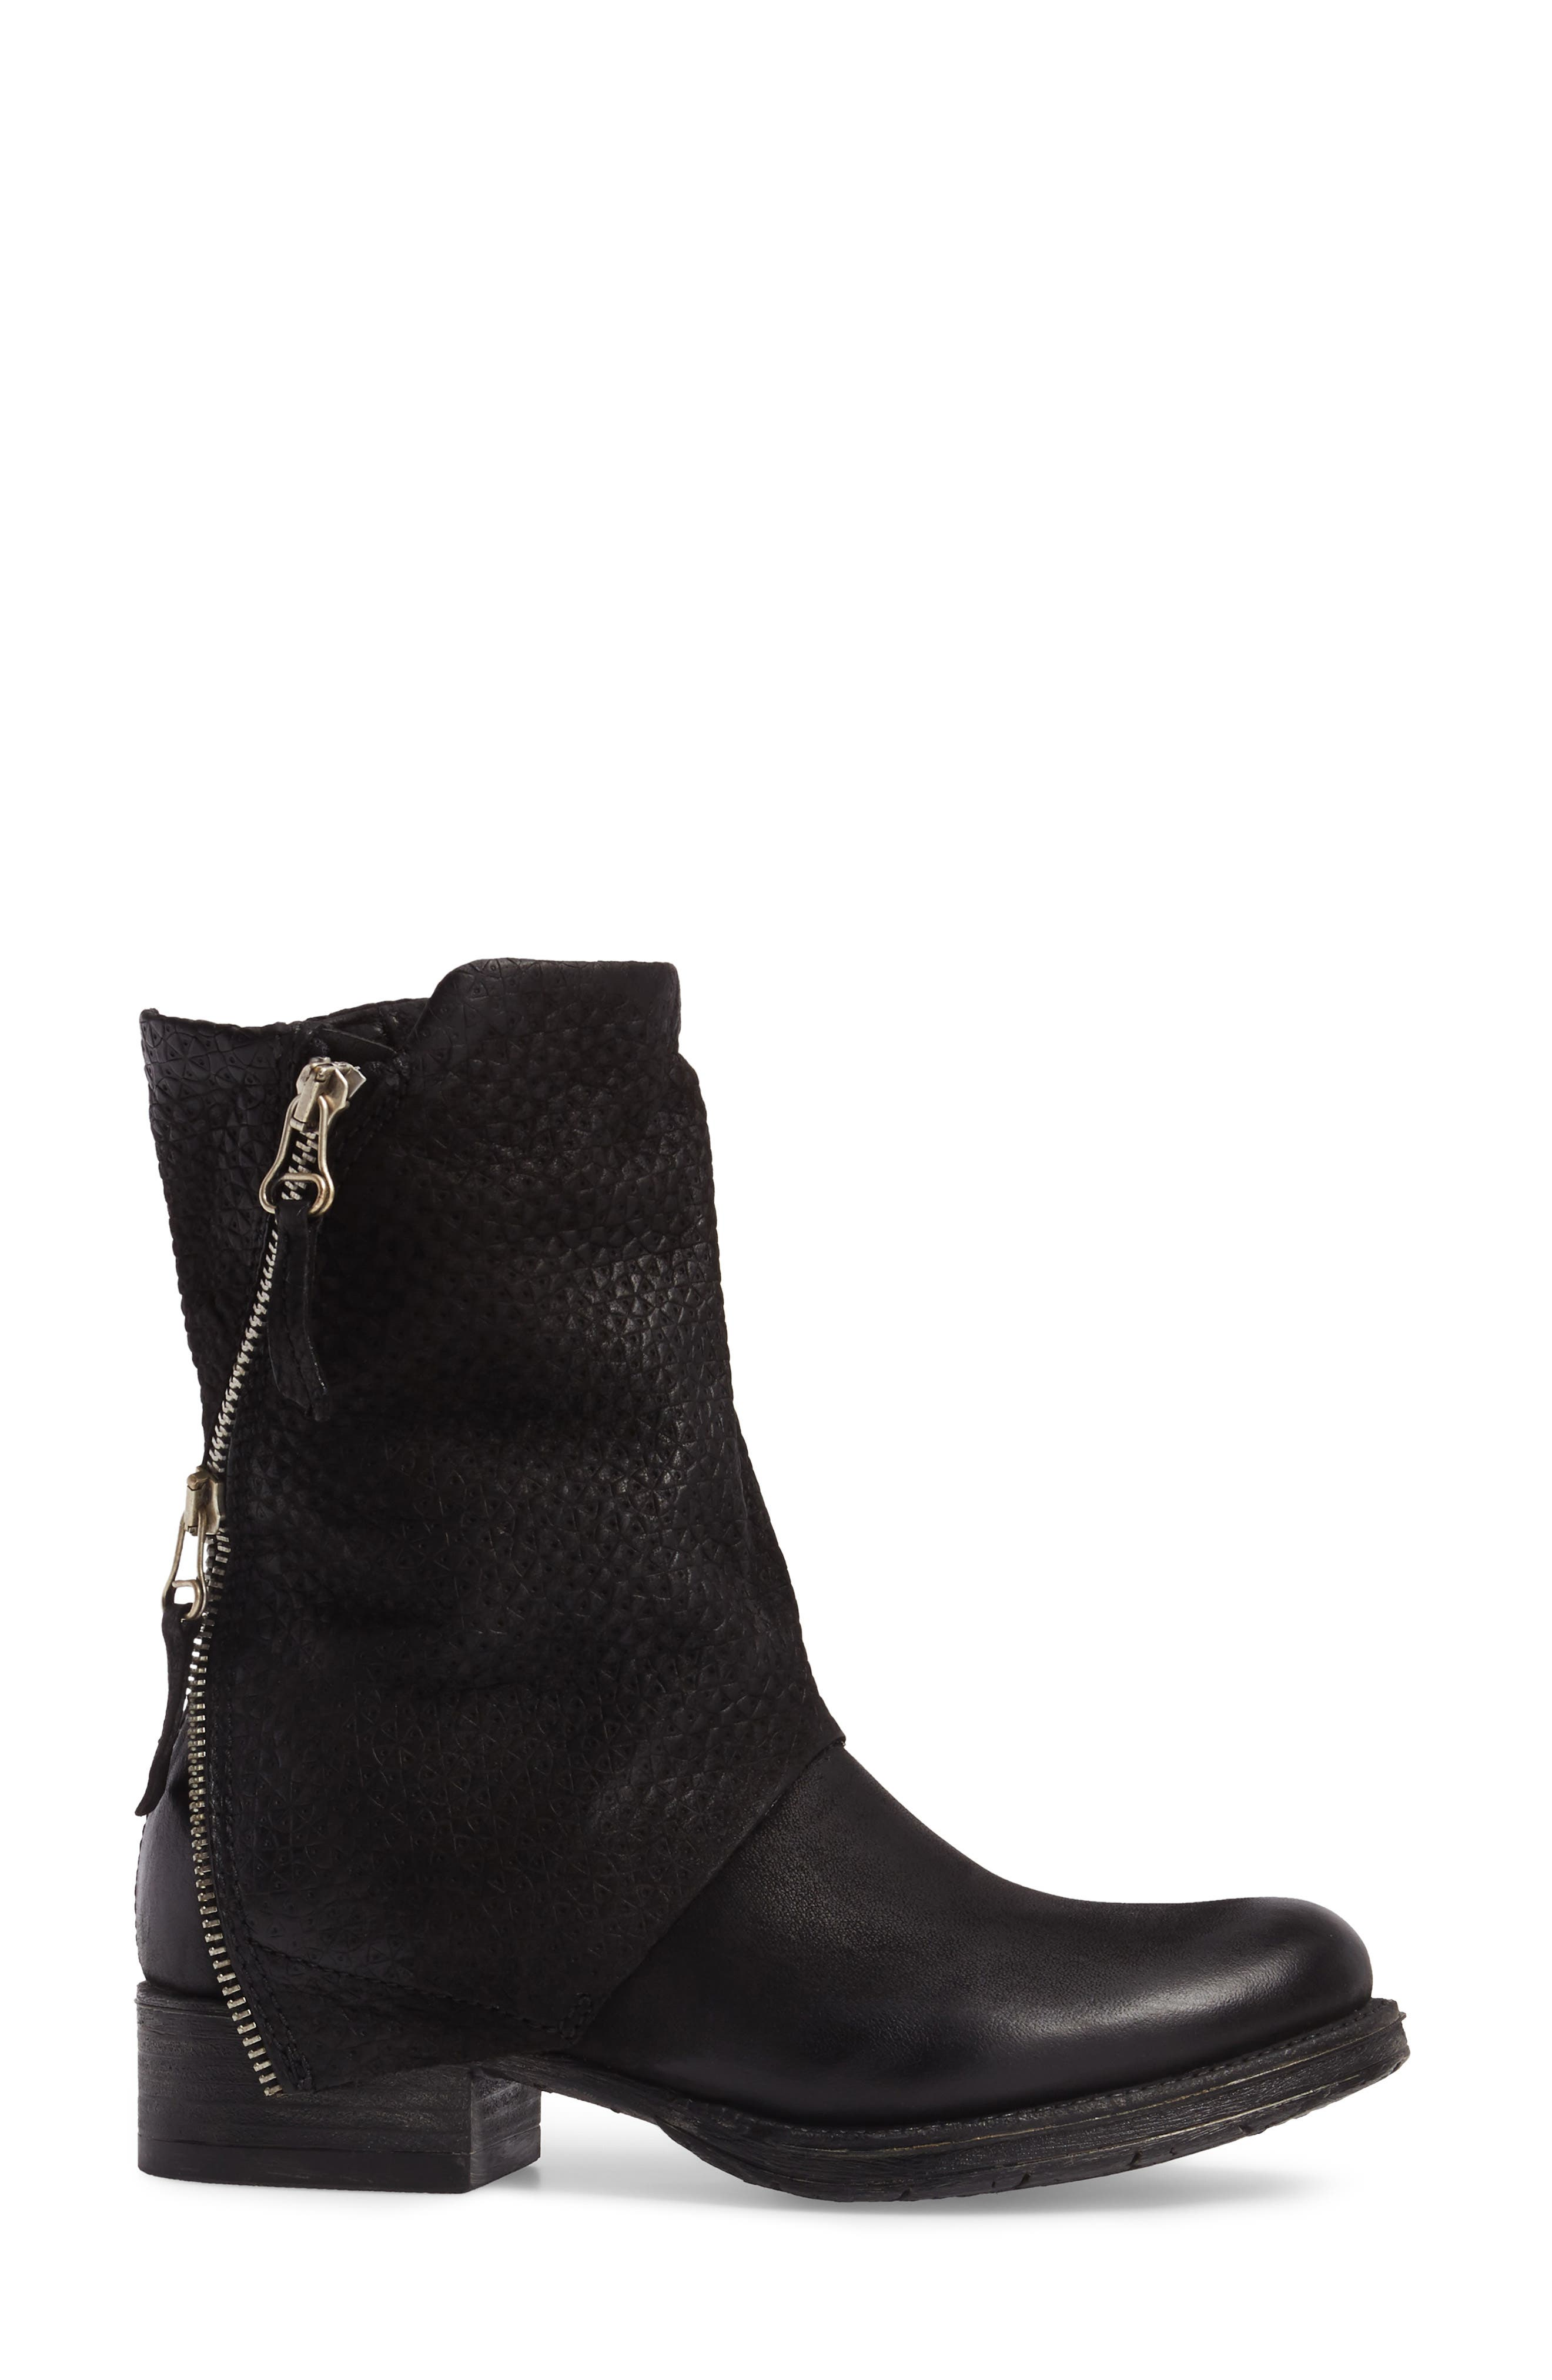 Nugget Asymmetrical Textured Boot,                             Alternate thumbnail 3, color,                             001